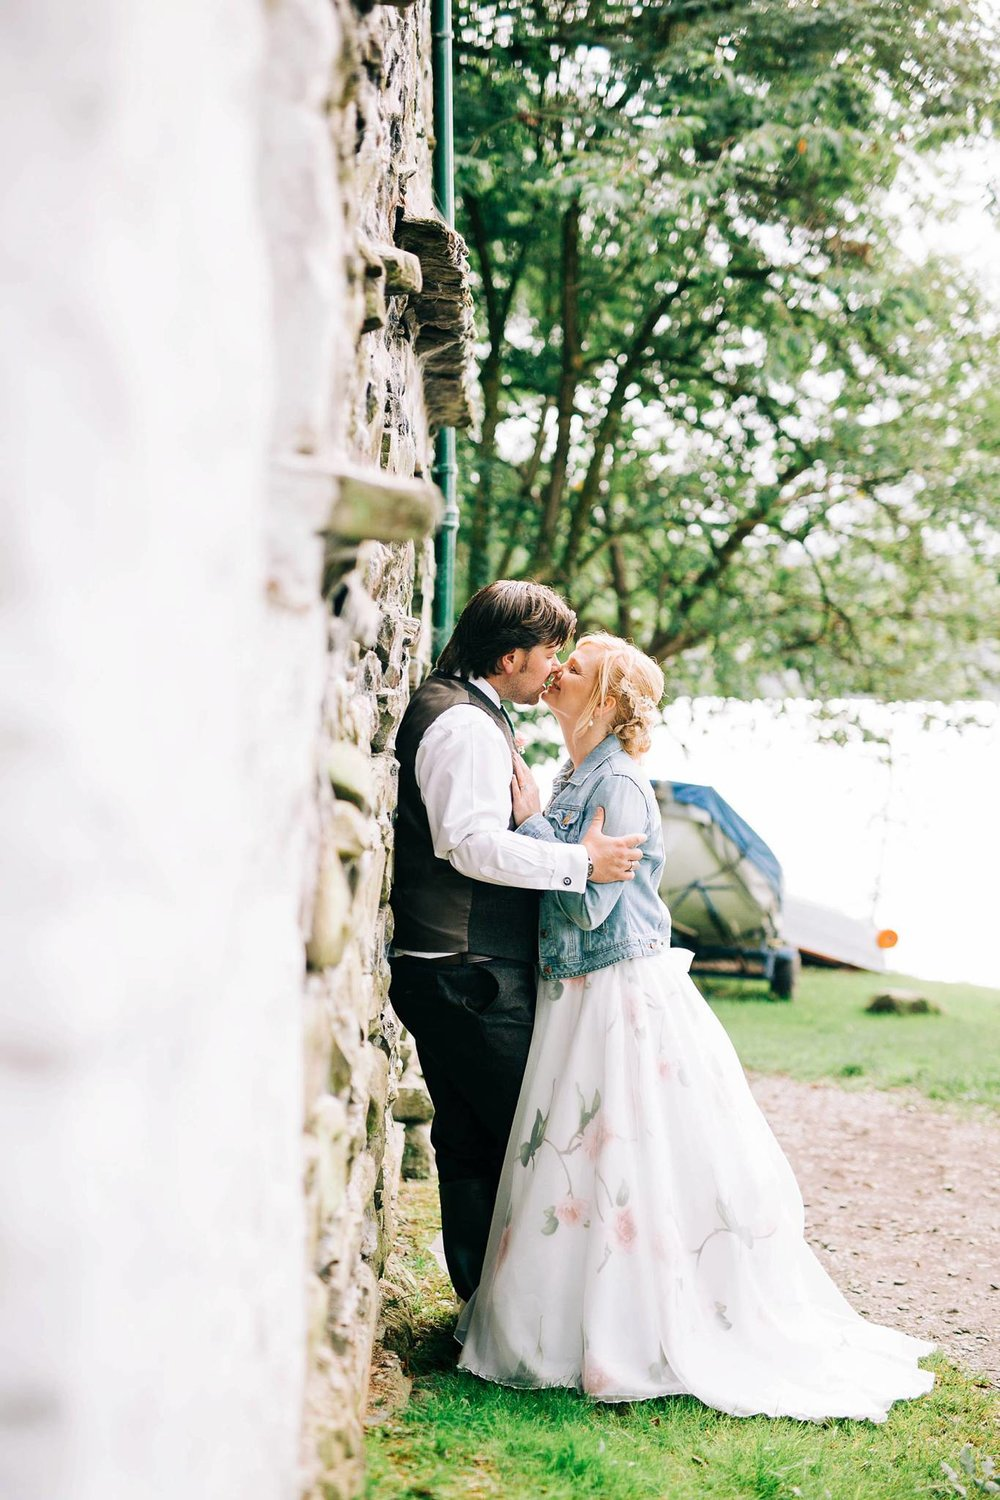 Natural wedding photography Manchester - Clare Robinson Photography_0041.jpg